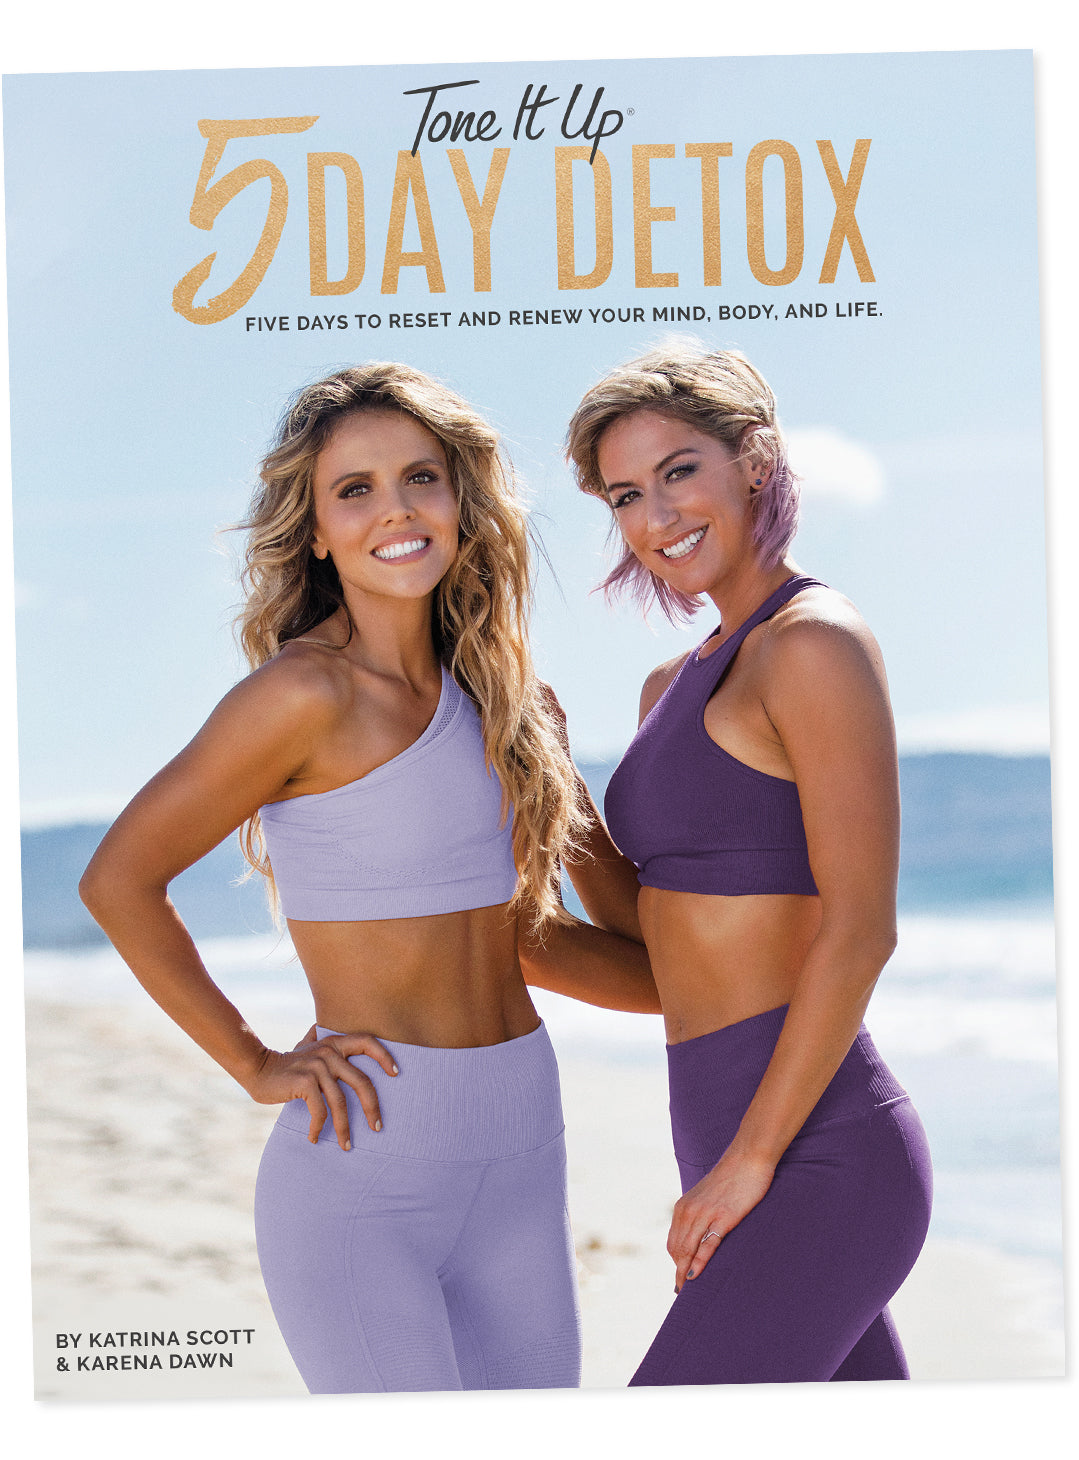 5-Day Detox | Cleanse, Restore & Energize, Naturally - Tone It Up